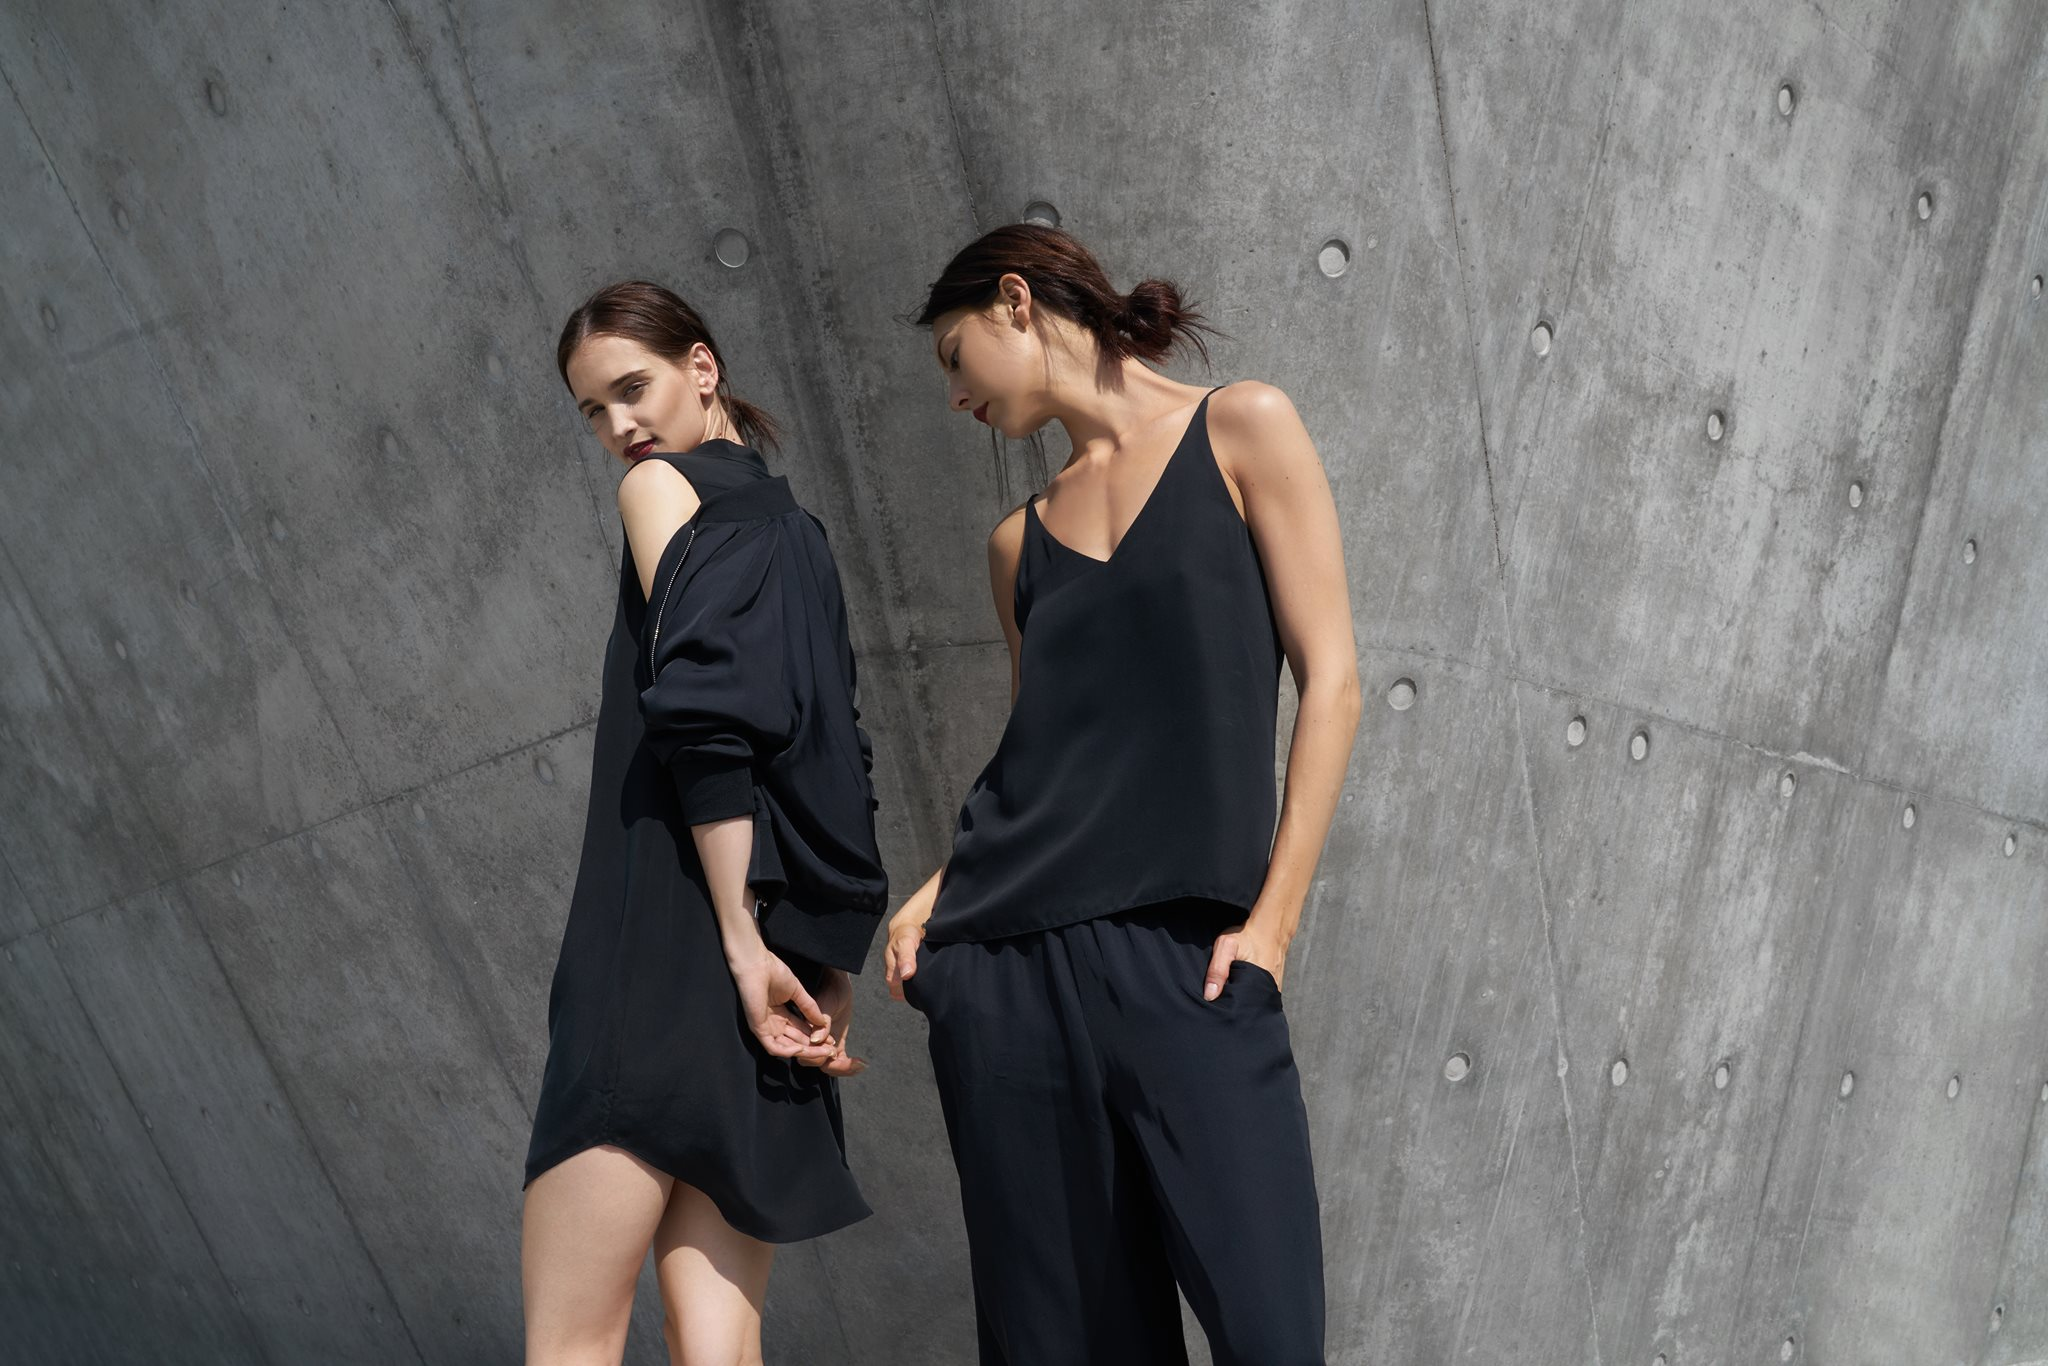 Two women wearing black silk standing in front of a gray wall